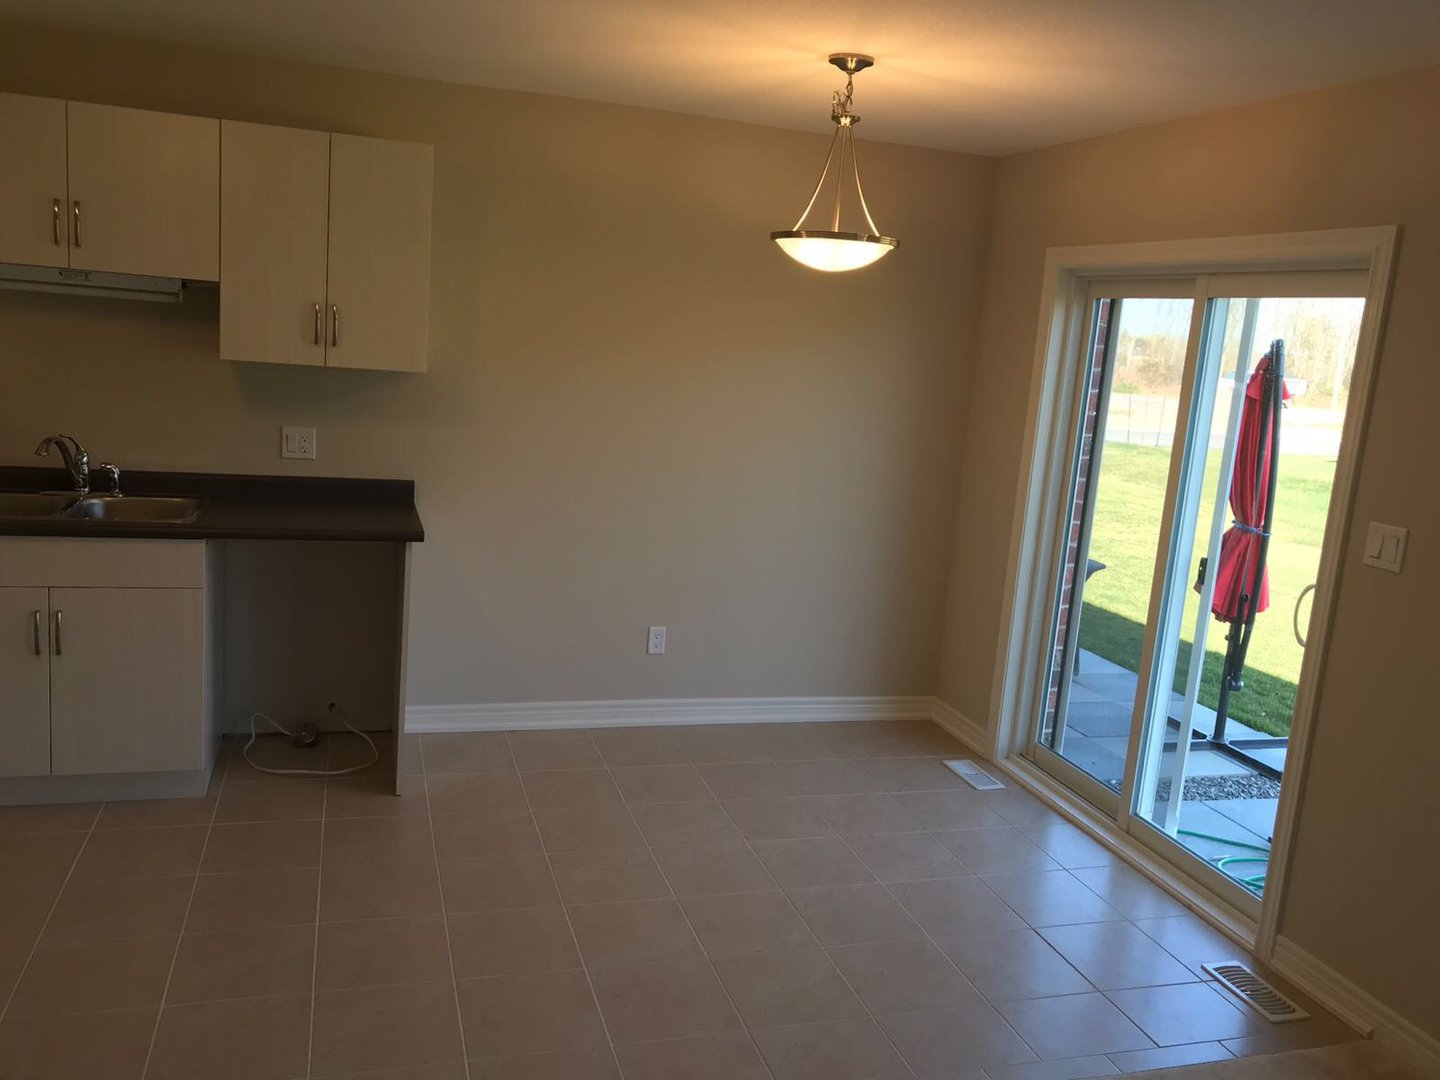 Apartment for rent at 285 Silverwood Ave, Welland, ON. This is the empty room with tile floor and natural light.